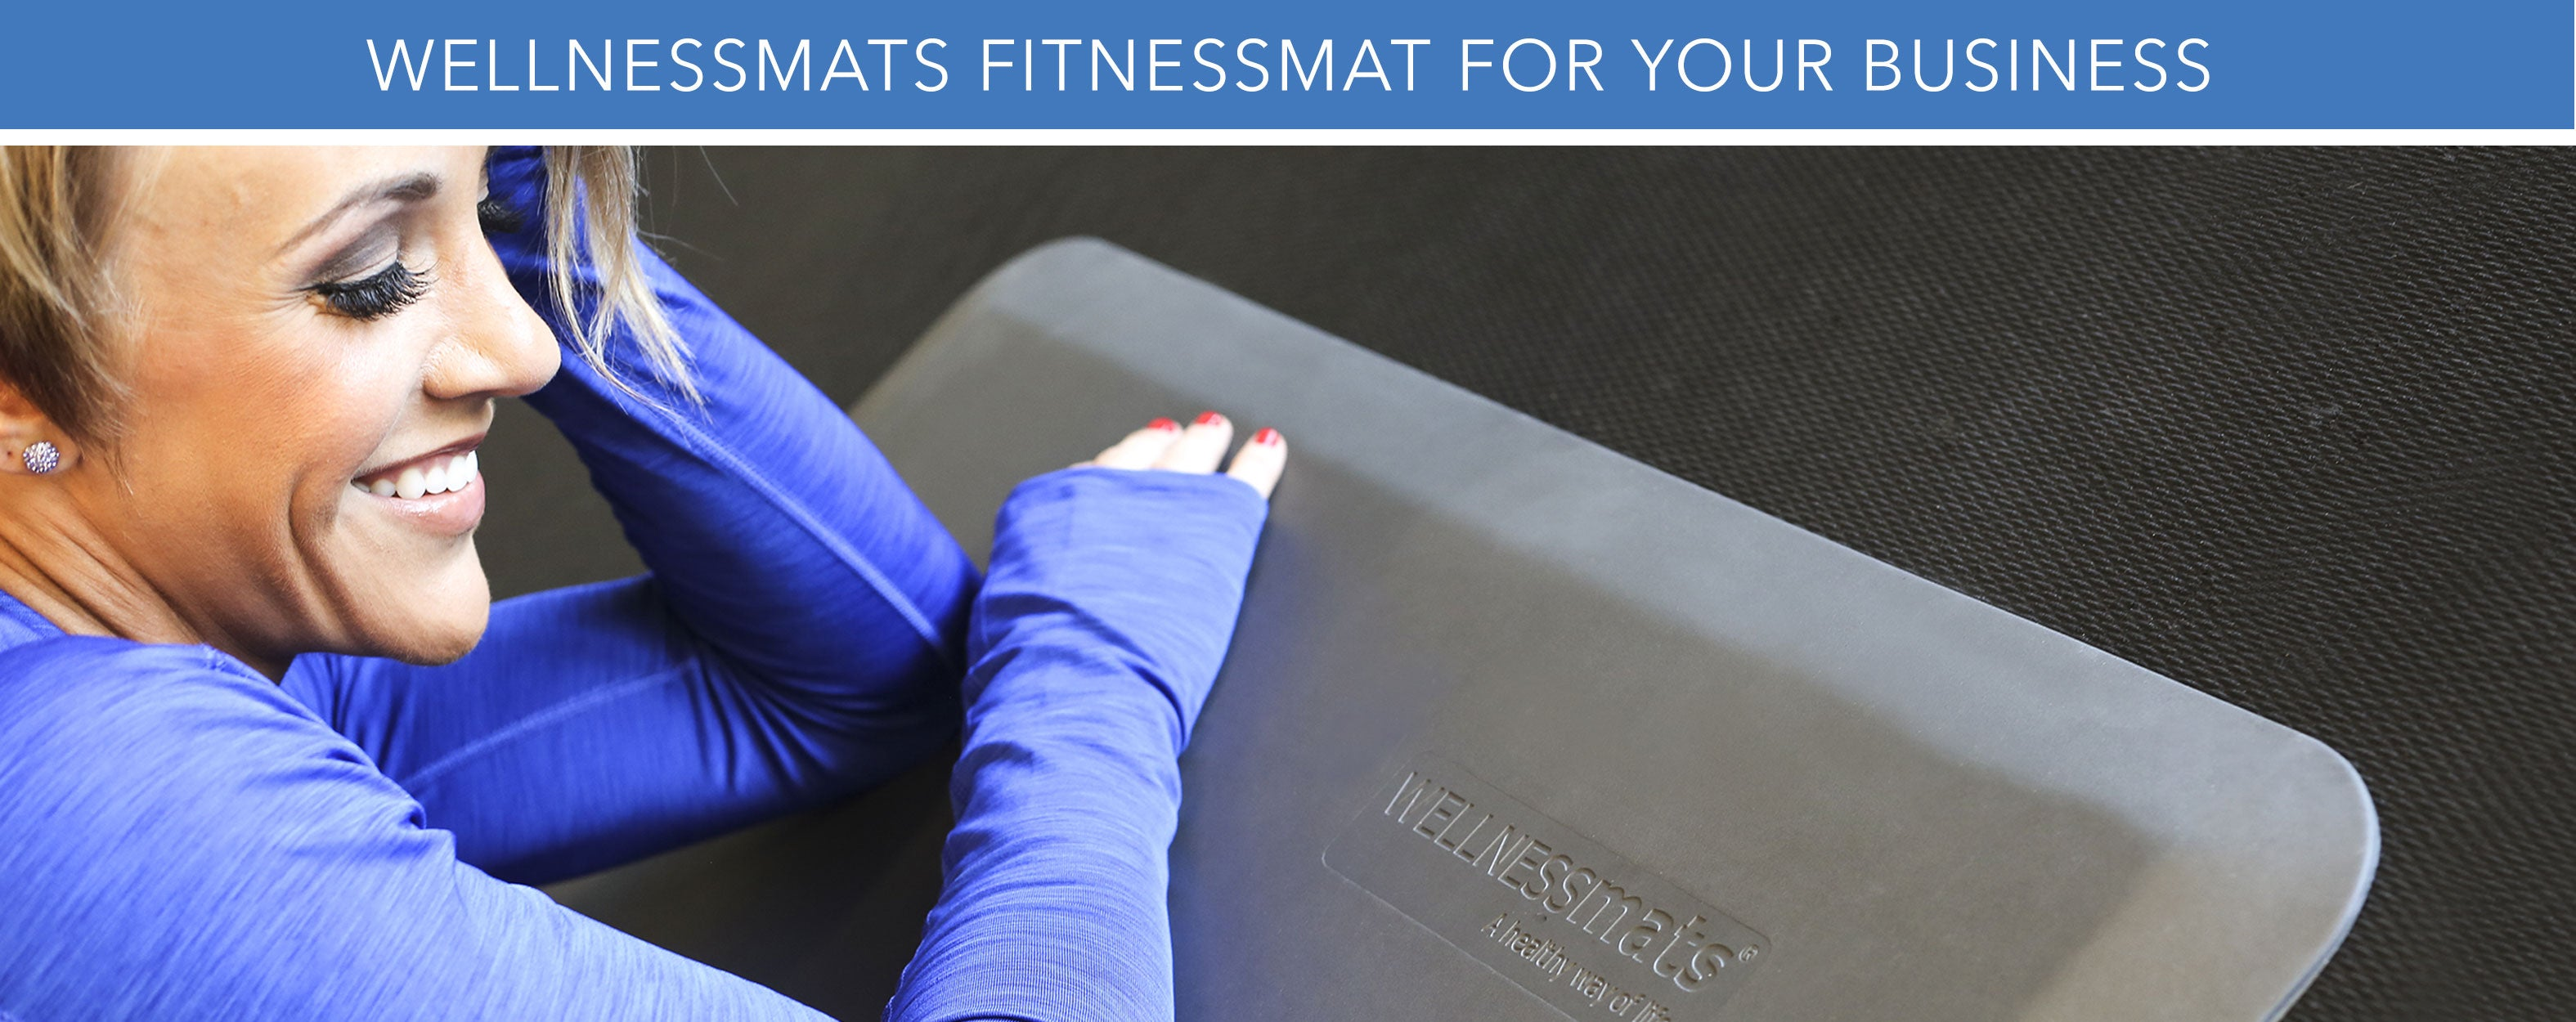 WELLNESSMATS FITNESSMAT FOR YOUR BUSINESS